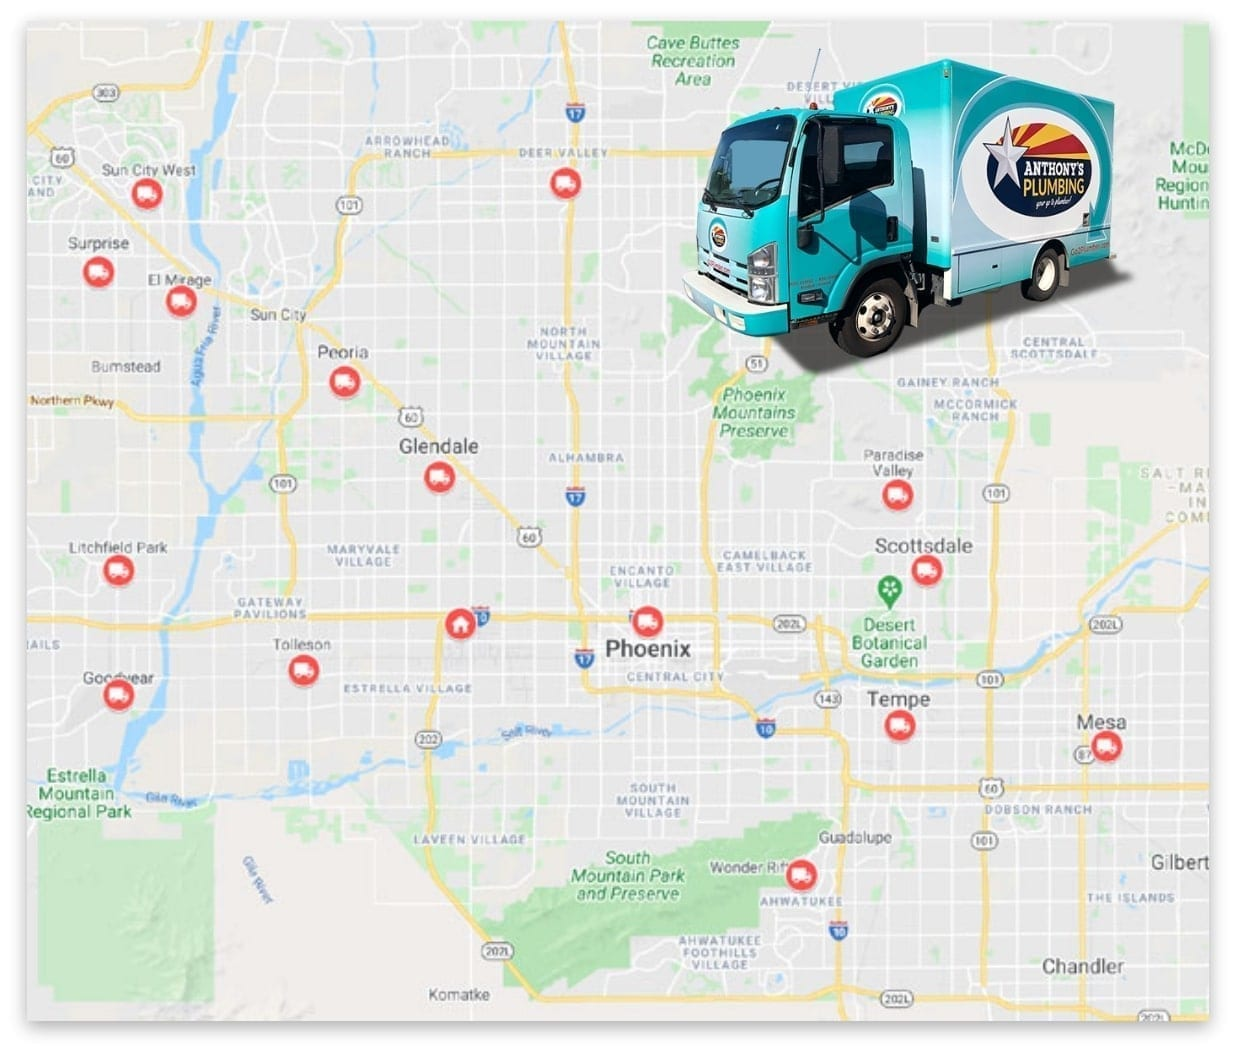 Anthony's Plumbing Service Area Map